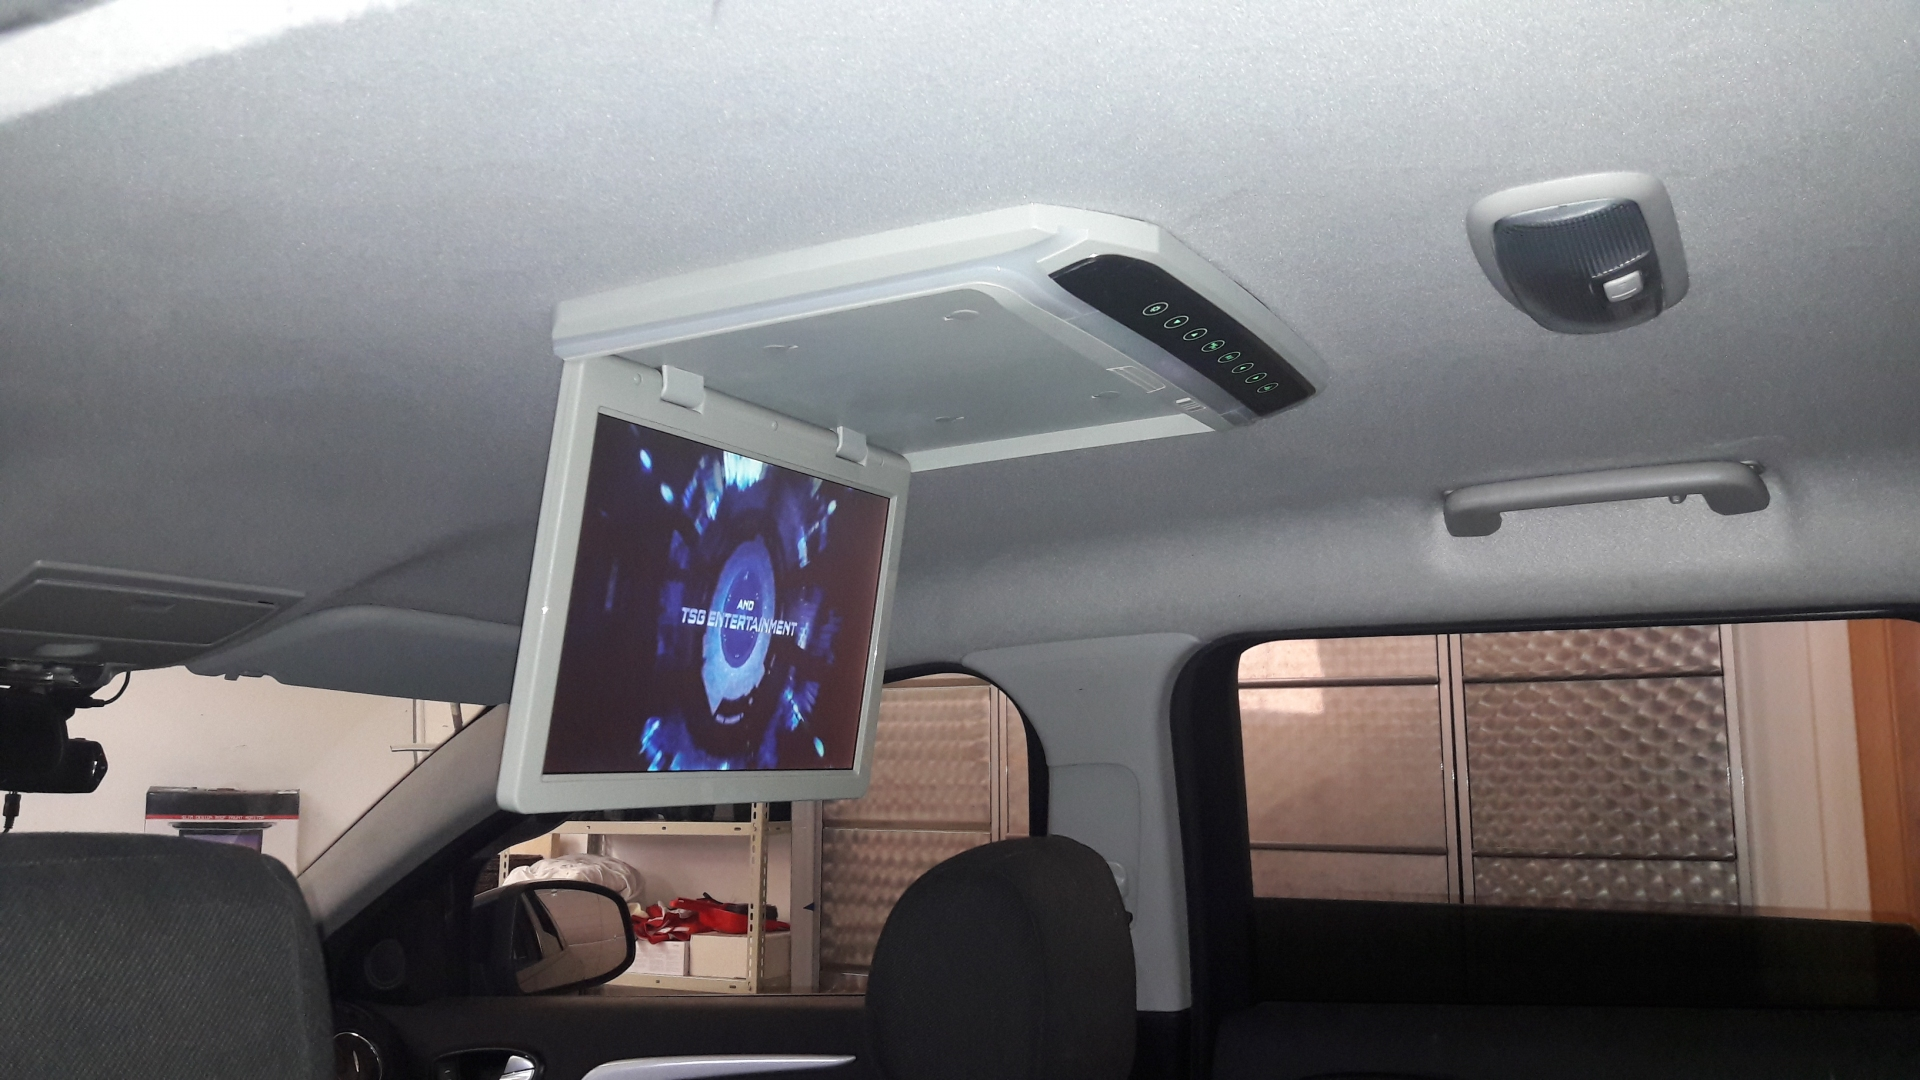 Ford Mondeo LCD monitor 12,1